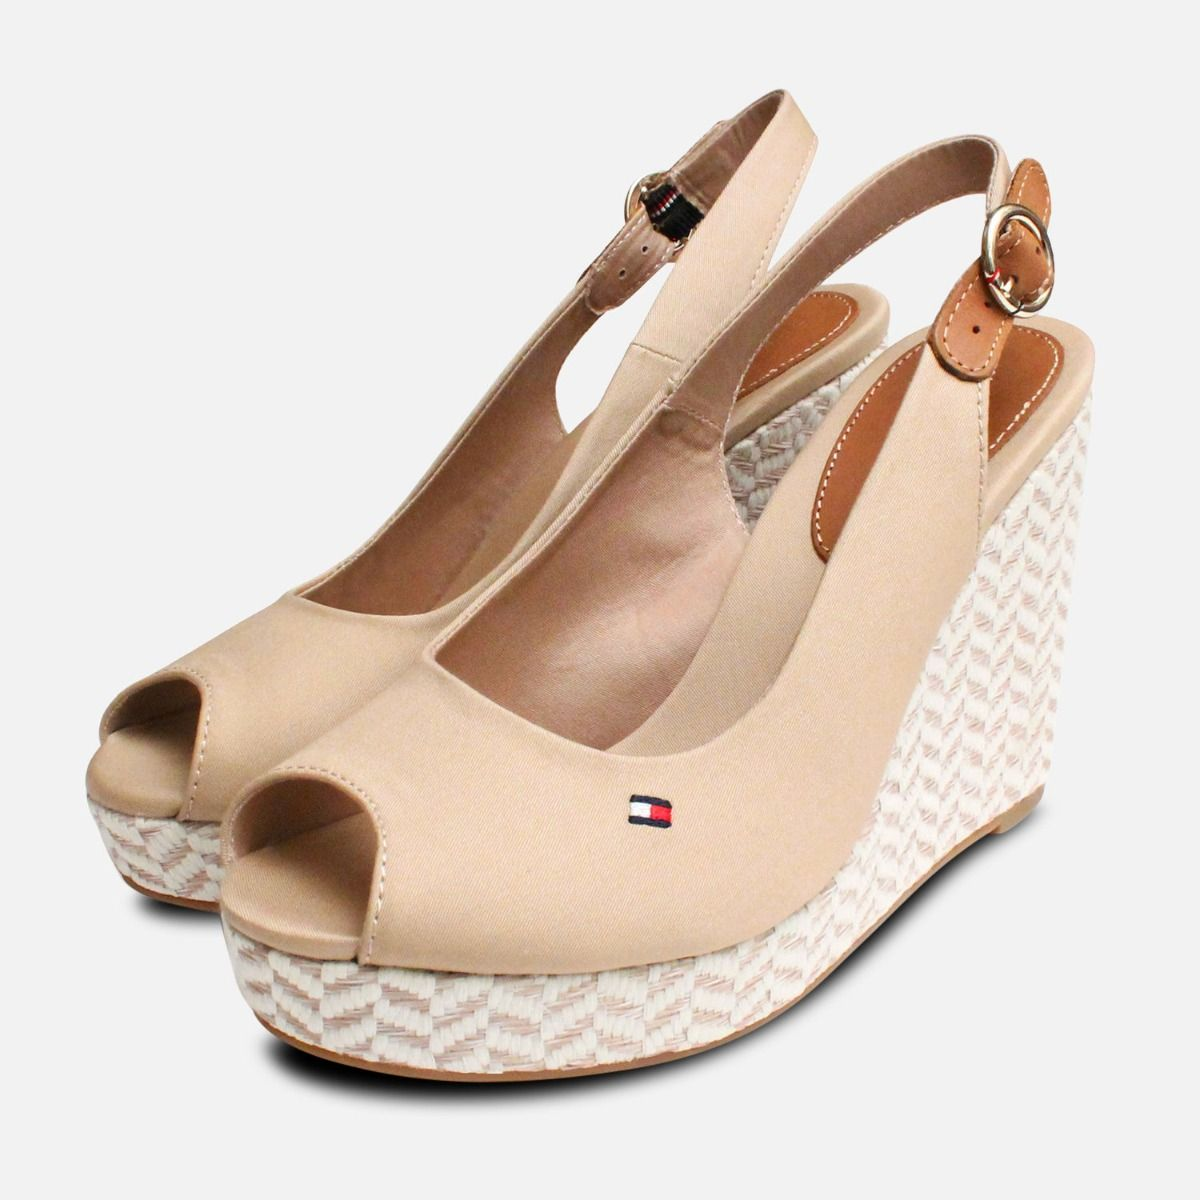 5a730e2ace9 Tommy Hilfiger Elena Platform Sand Wedge Sandals